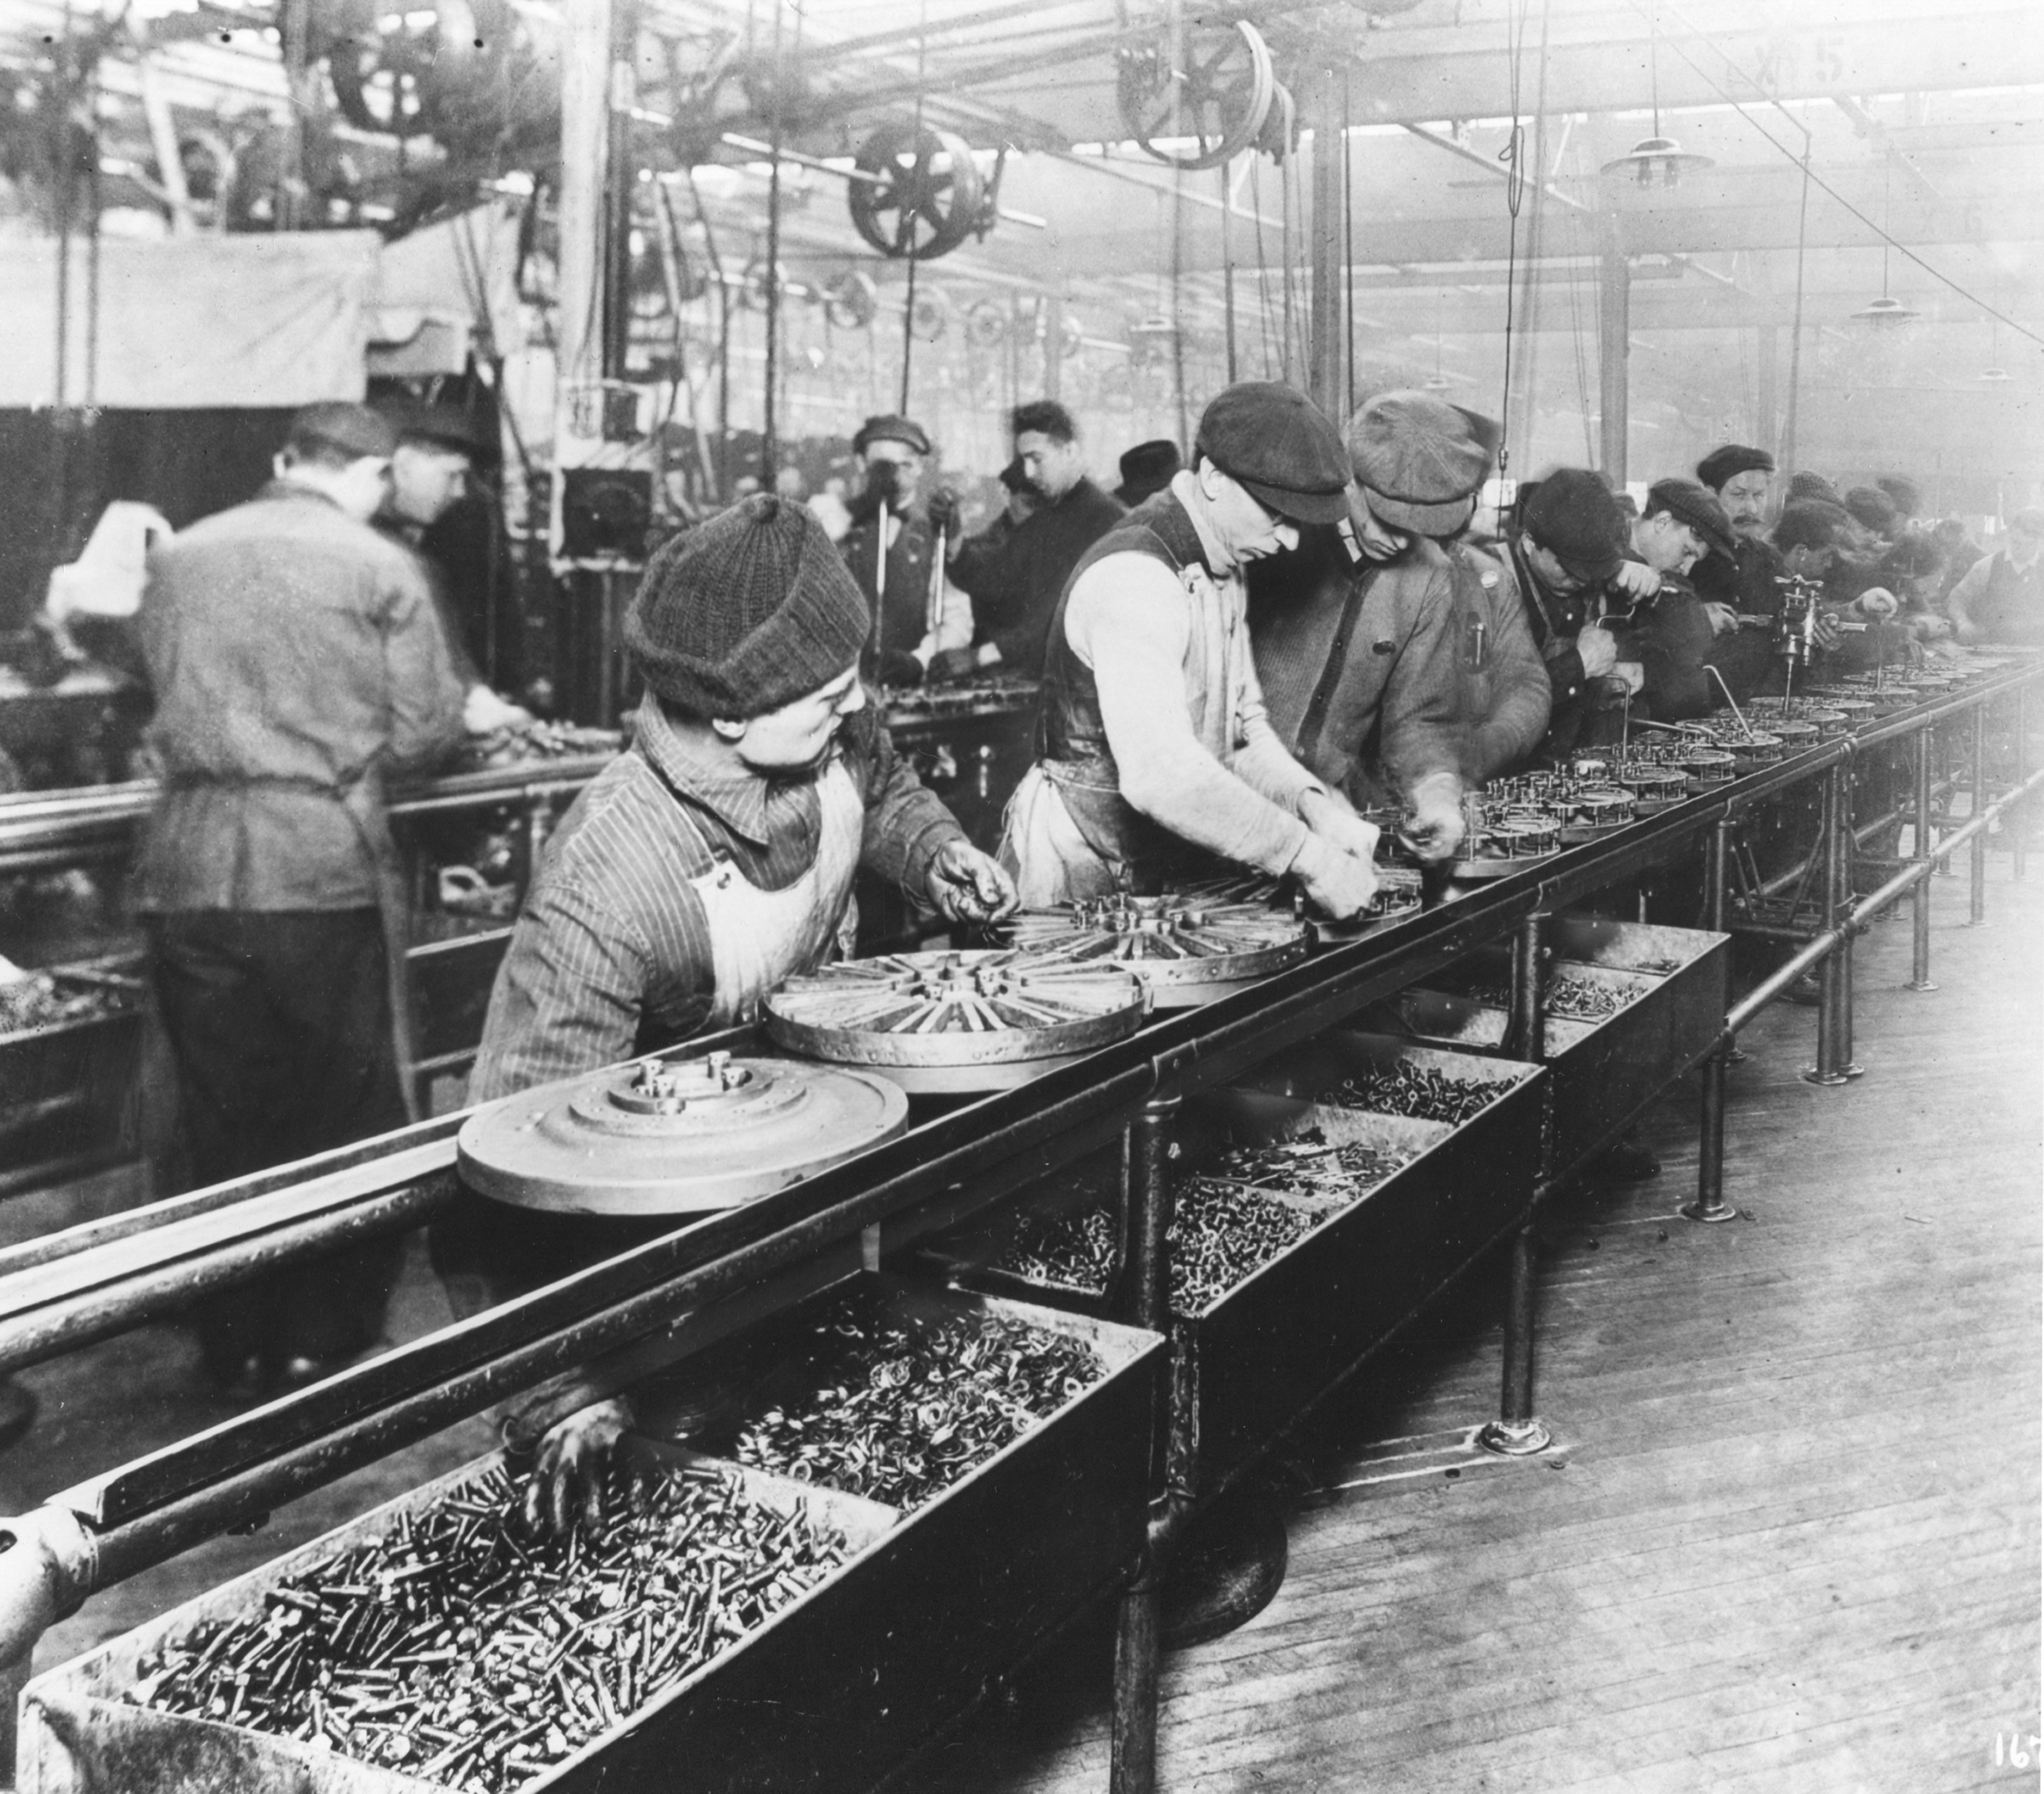 Workers in asembly line putting together magnetos and flywheels for 1913 Ford automobiles.